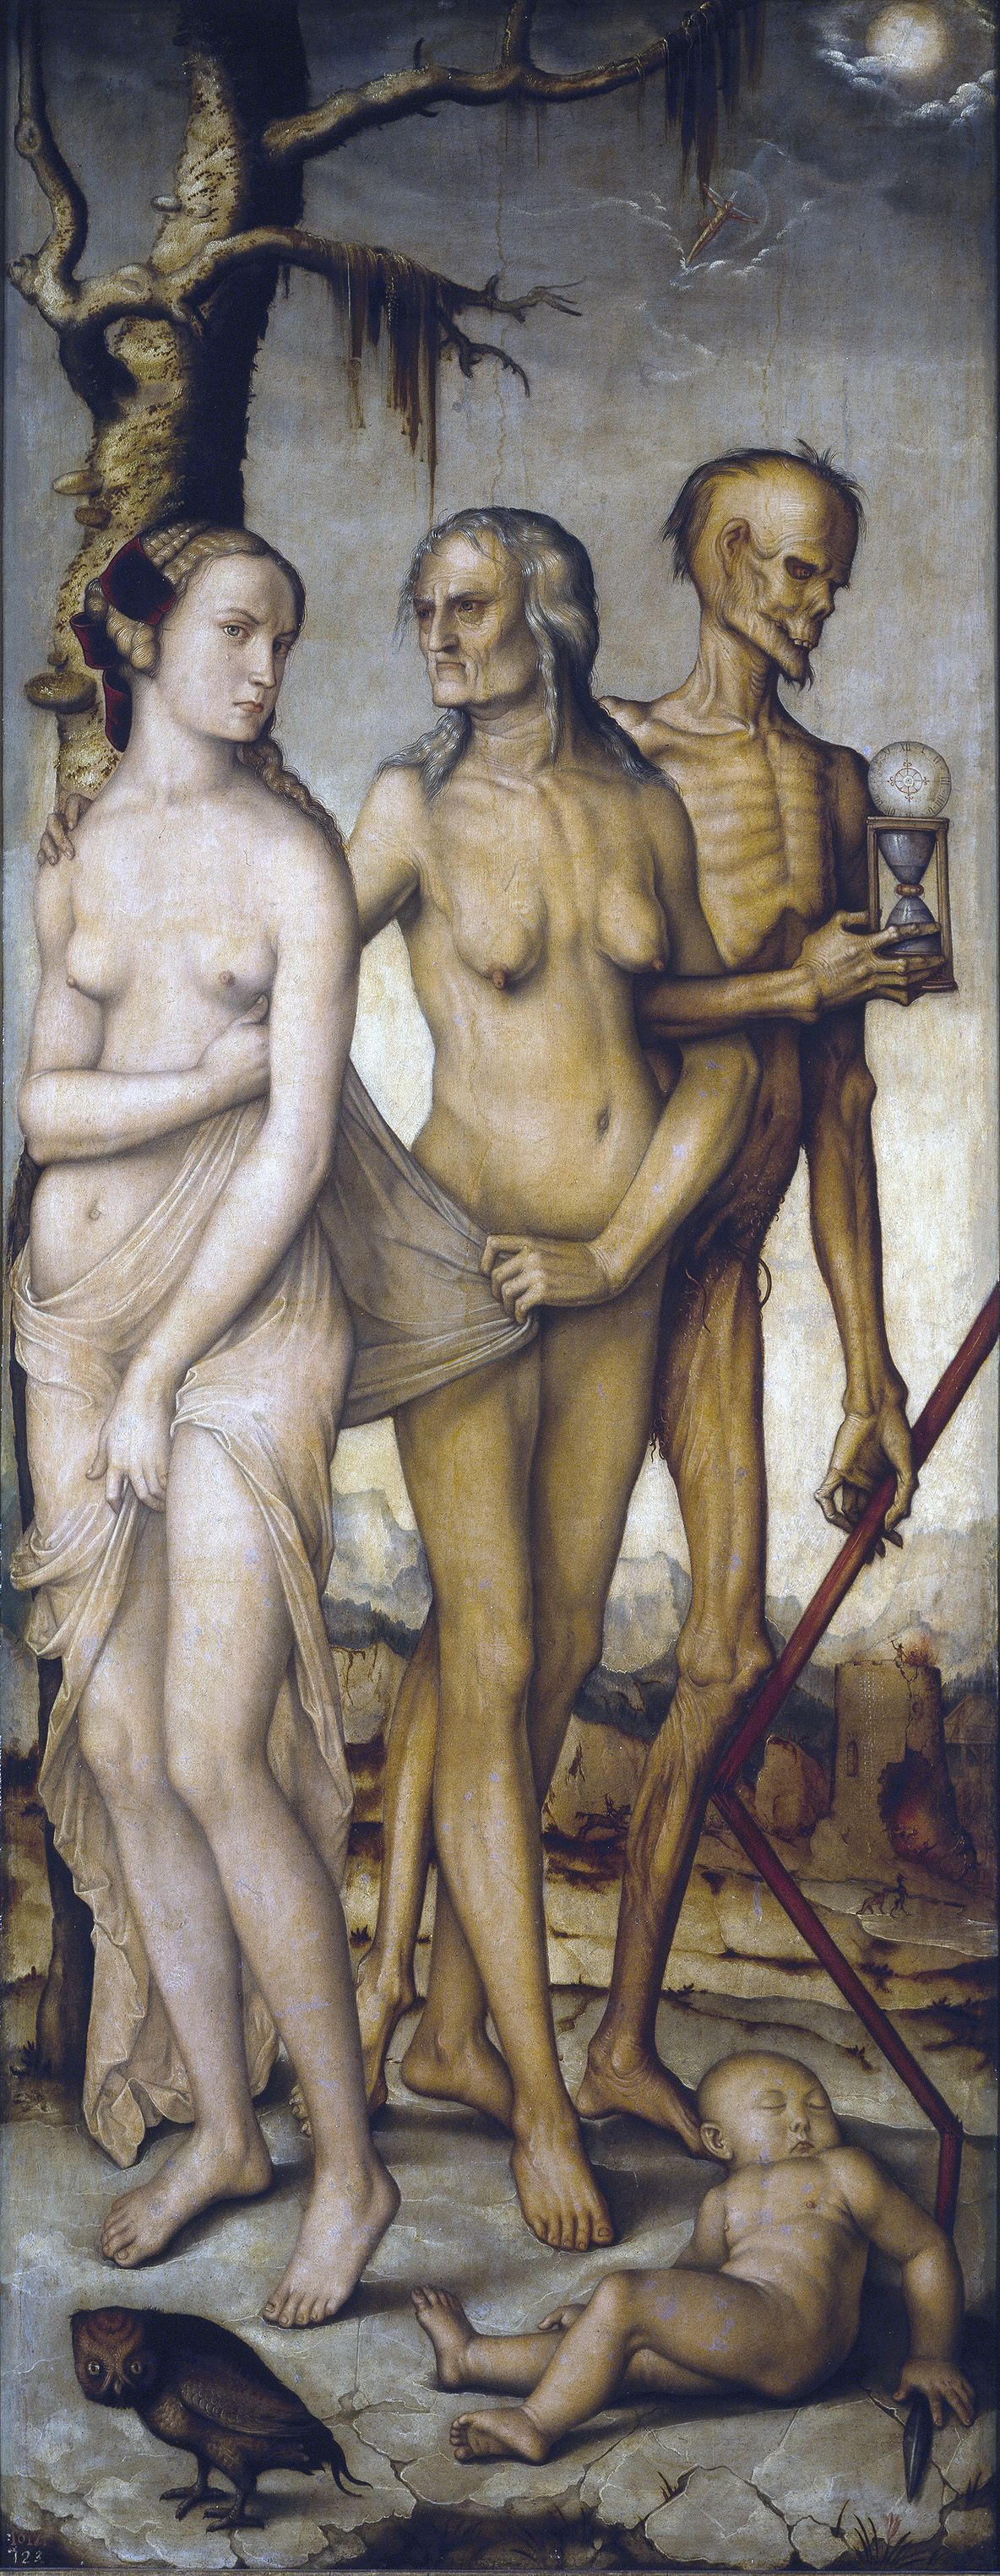 Hans Baldung, The Ages of Man and Death